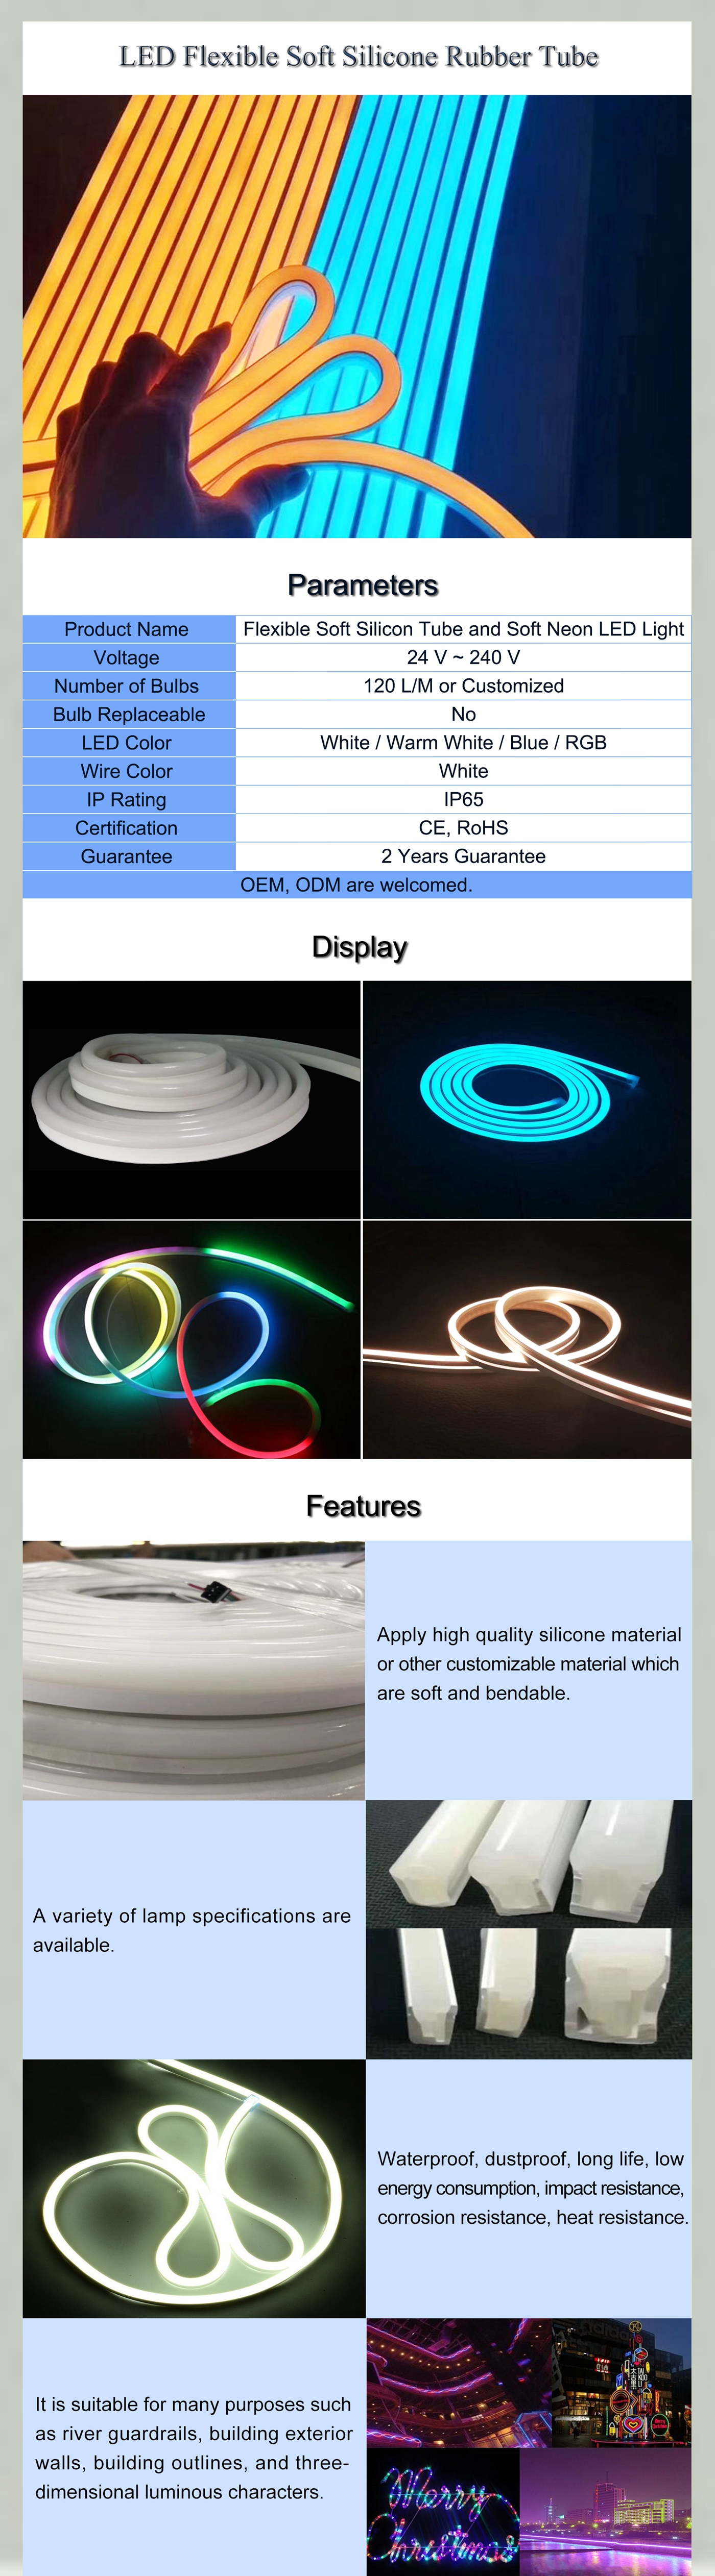 Soft Silicone Rubber LED Strip